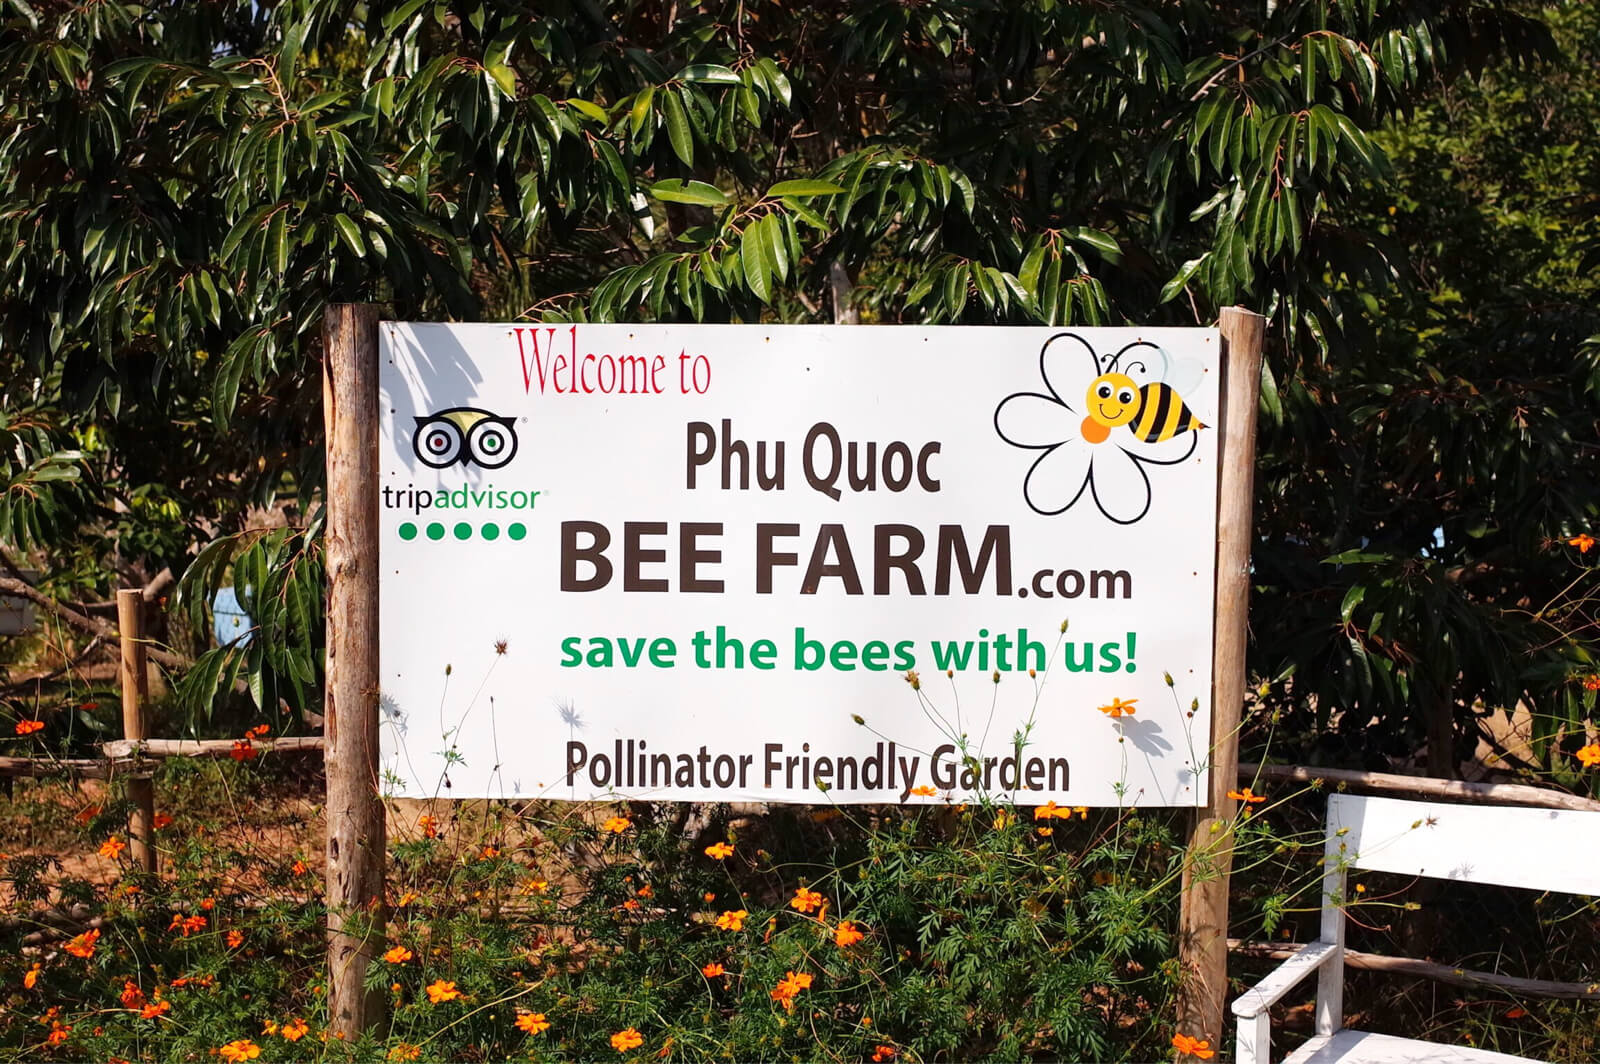 Bee Farm Cafe